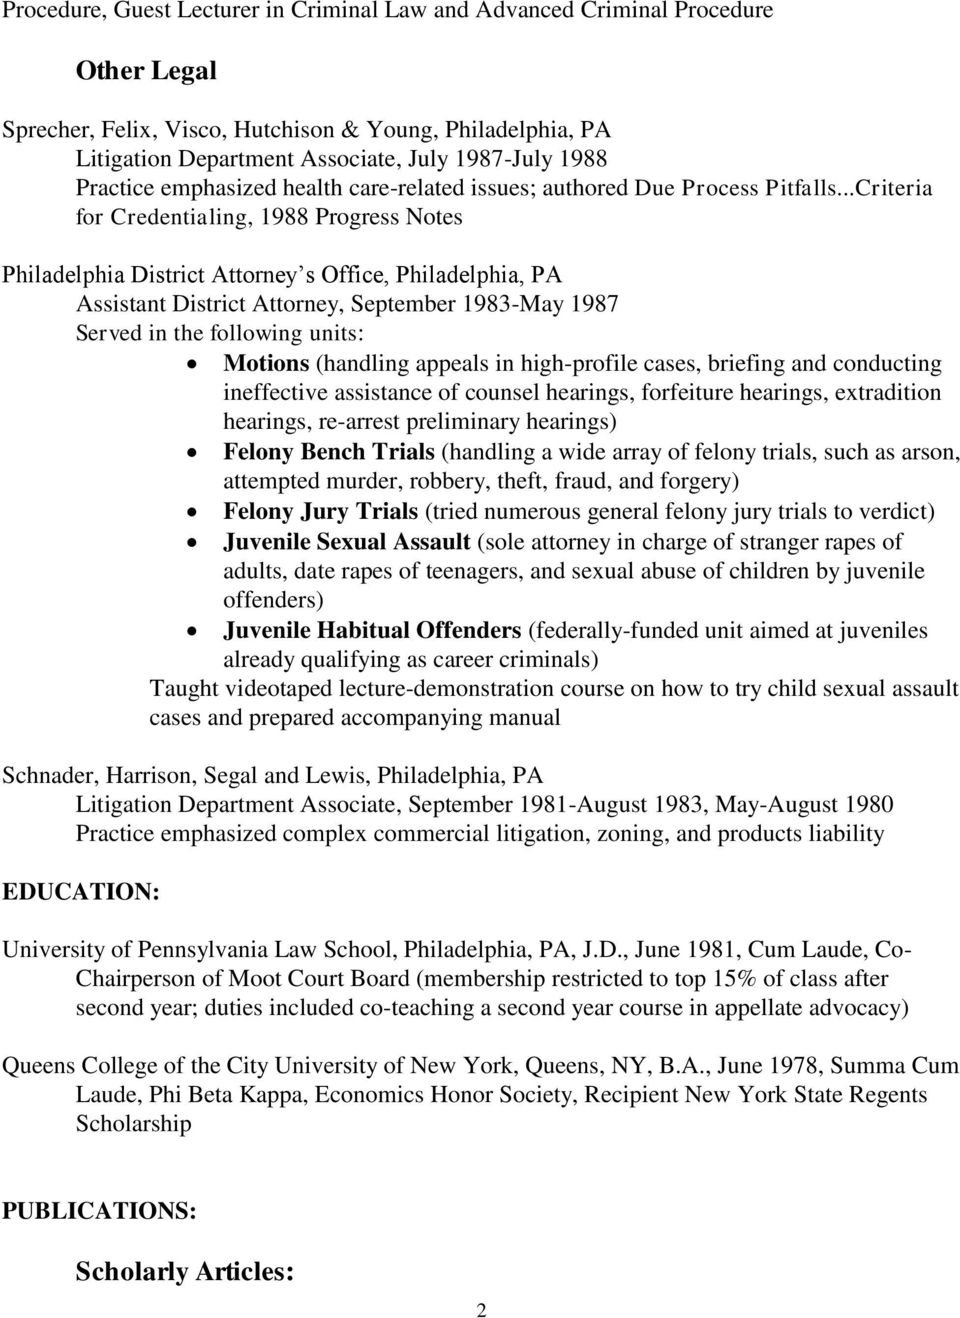 ..Criteria for Credentialing, 1988 Progress Notes Philadelphia District Attorney s Office, Philadelphia, PA Assistant District Attorney, September 1983-May 1987 Served in the following units: Motions